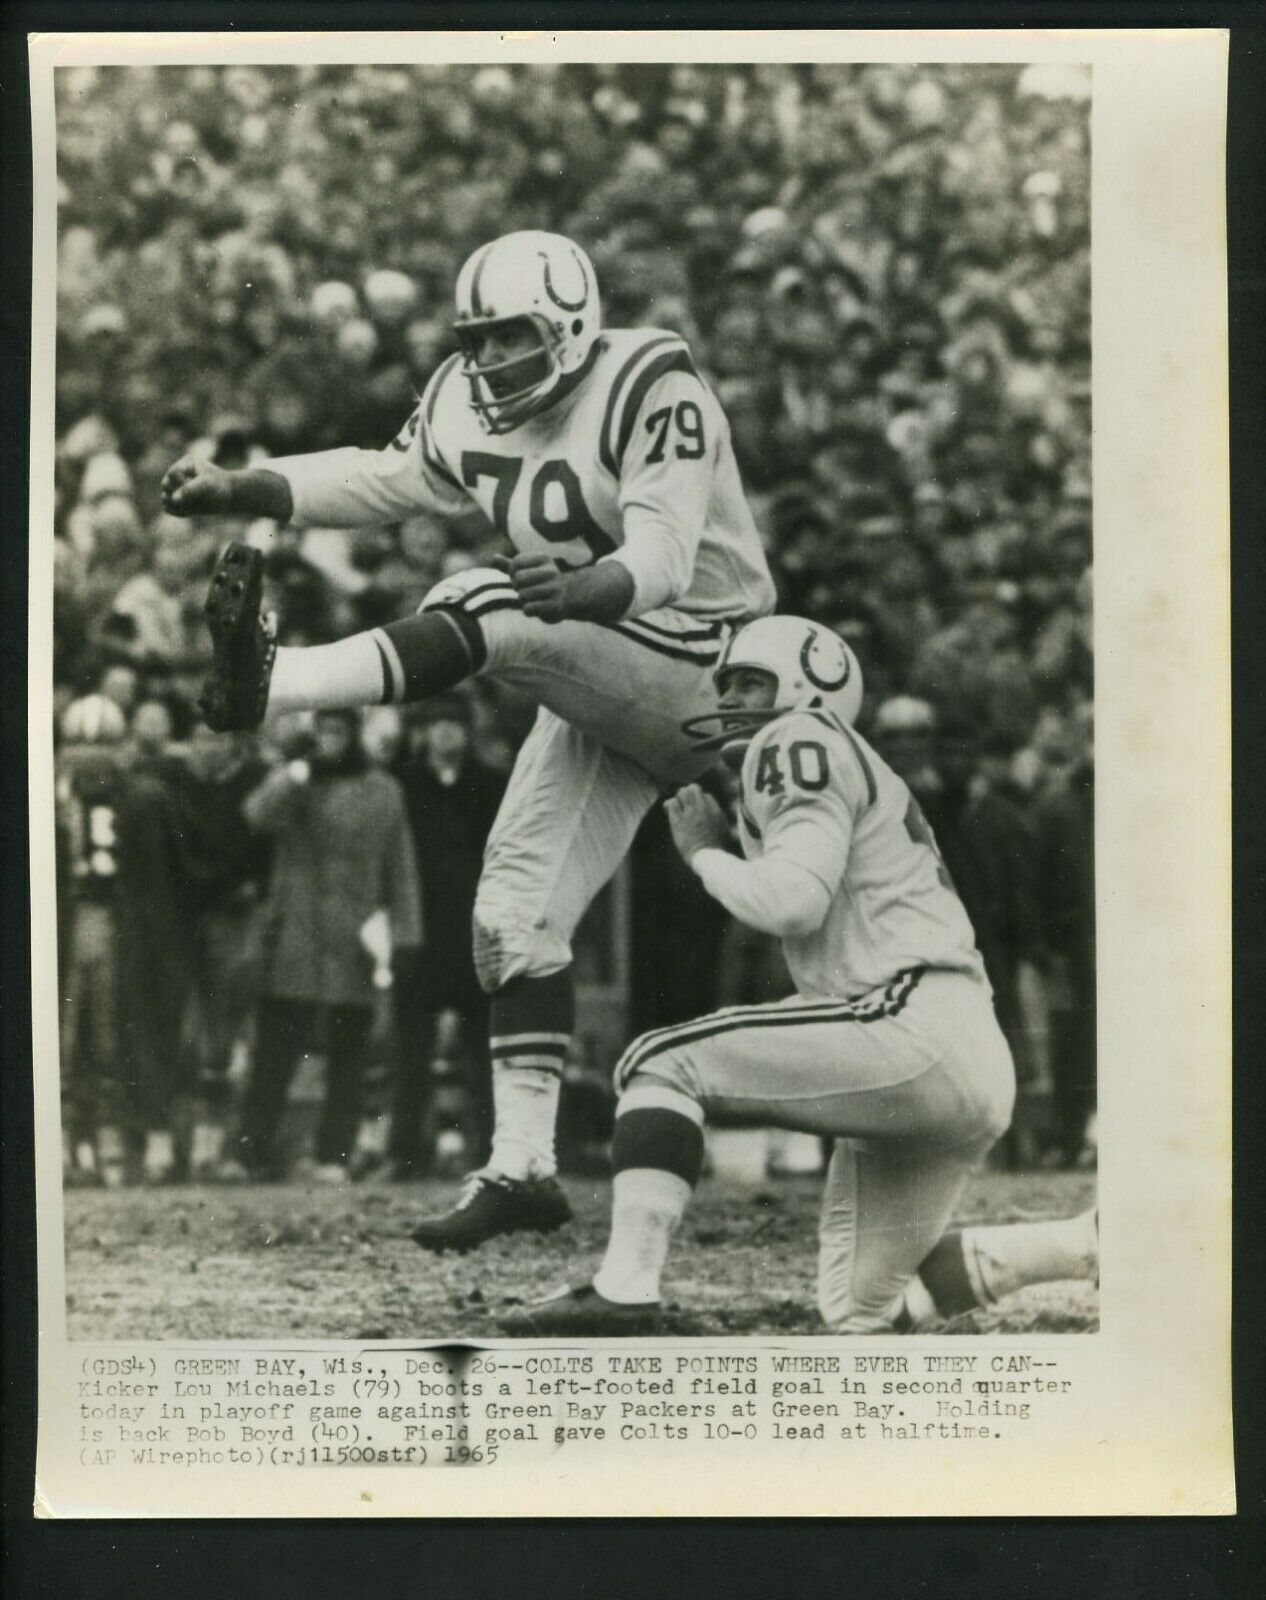 1965 Green Bay Wis Dec 26 Colts Take Points Where Ever They Can Kicker Lou Michaels 79 Uk Boots A Left Footer Field Goal In Second Quarter Today In 2020